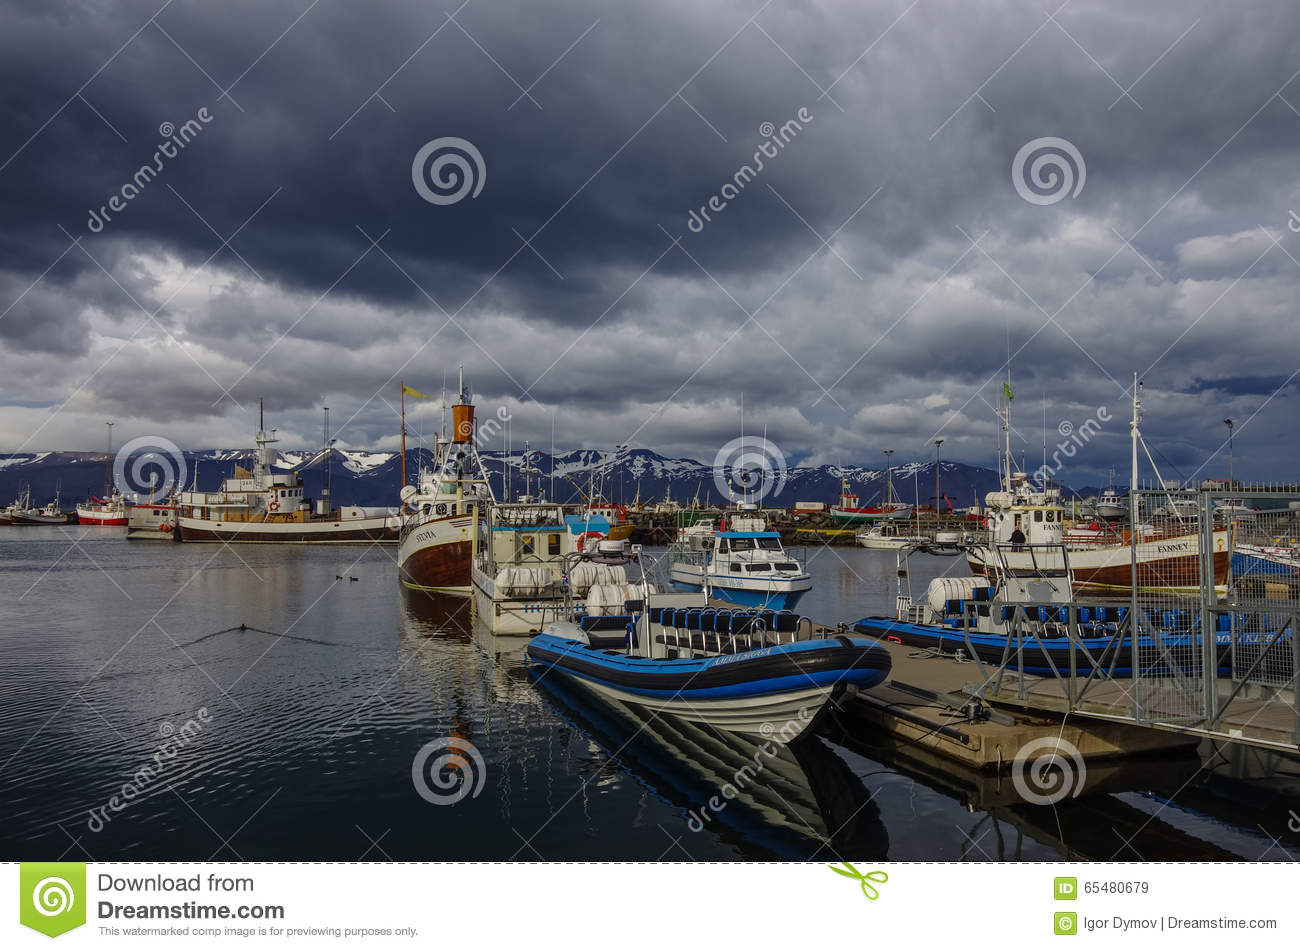 Husavik Iceland  city photos gallery : HUSAVIK, ICELAND august 25, 2014: Husavik is a town on the north ...